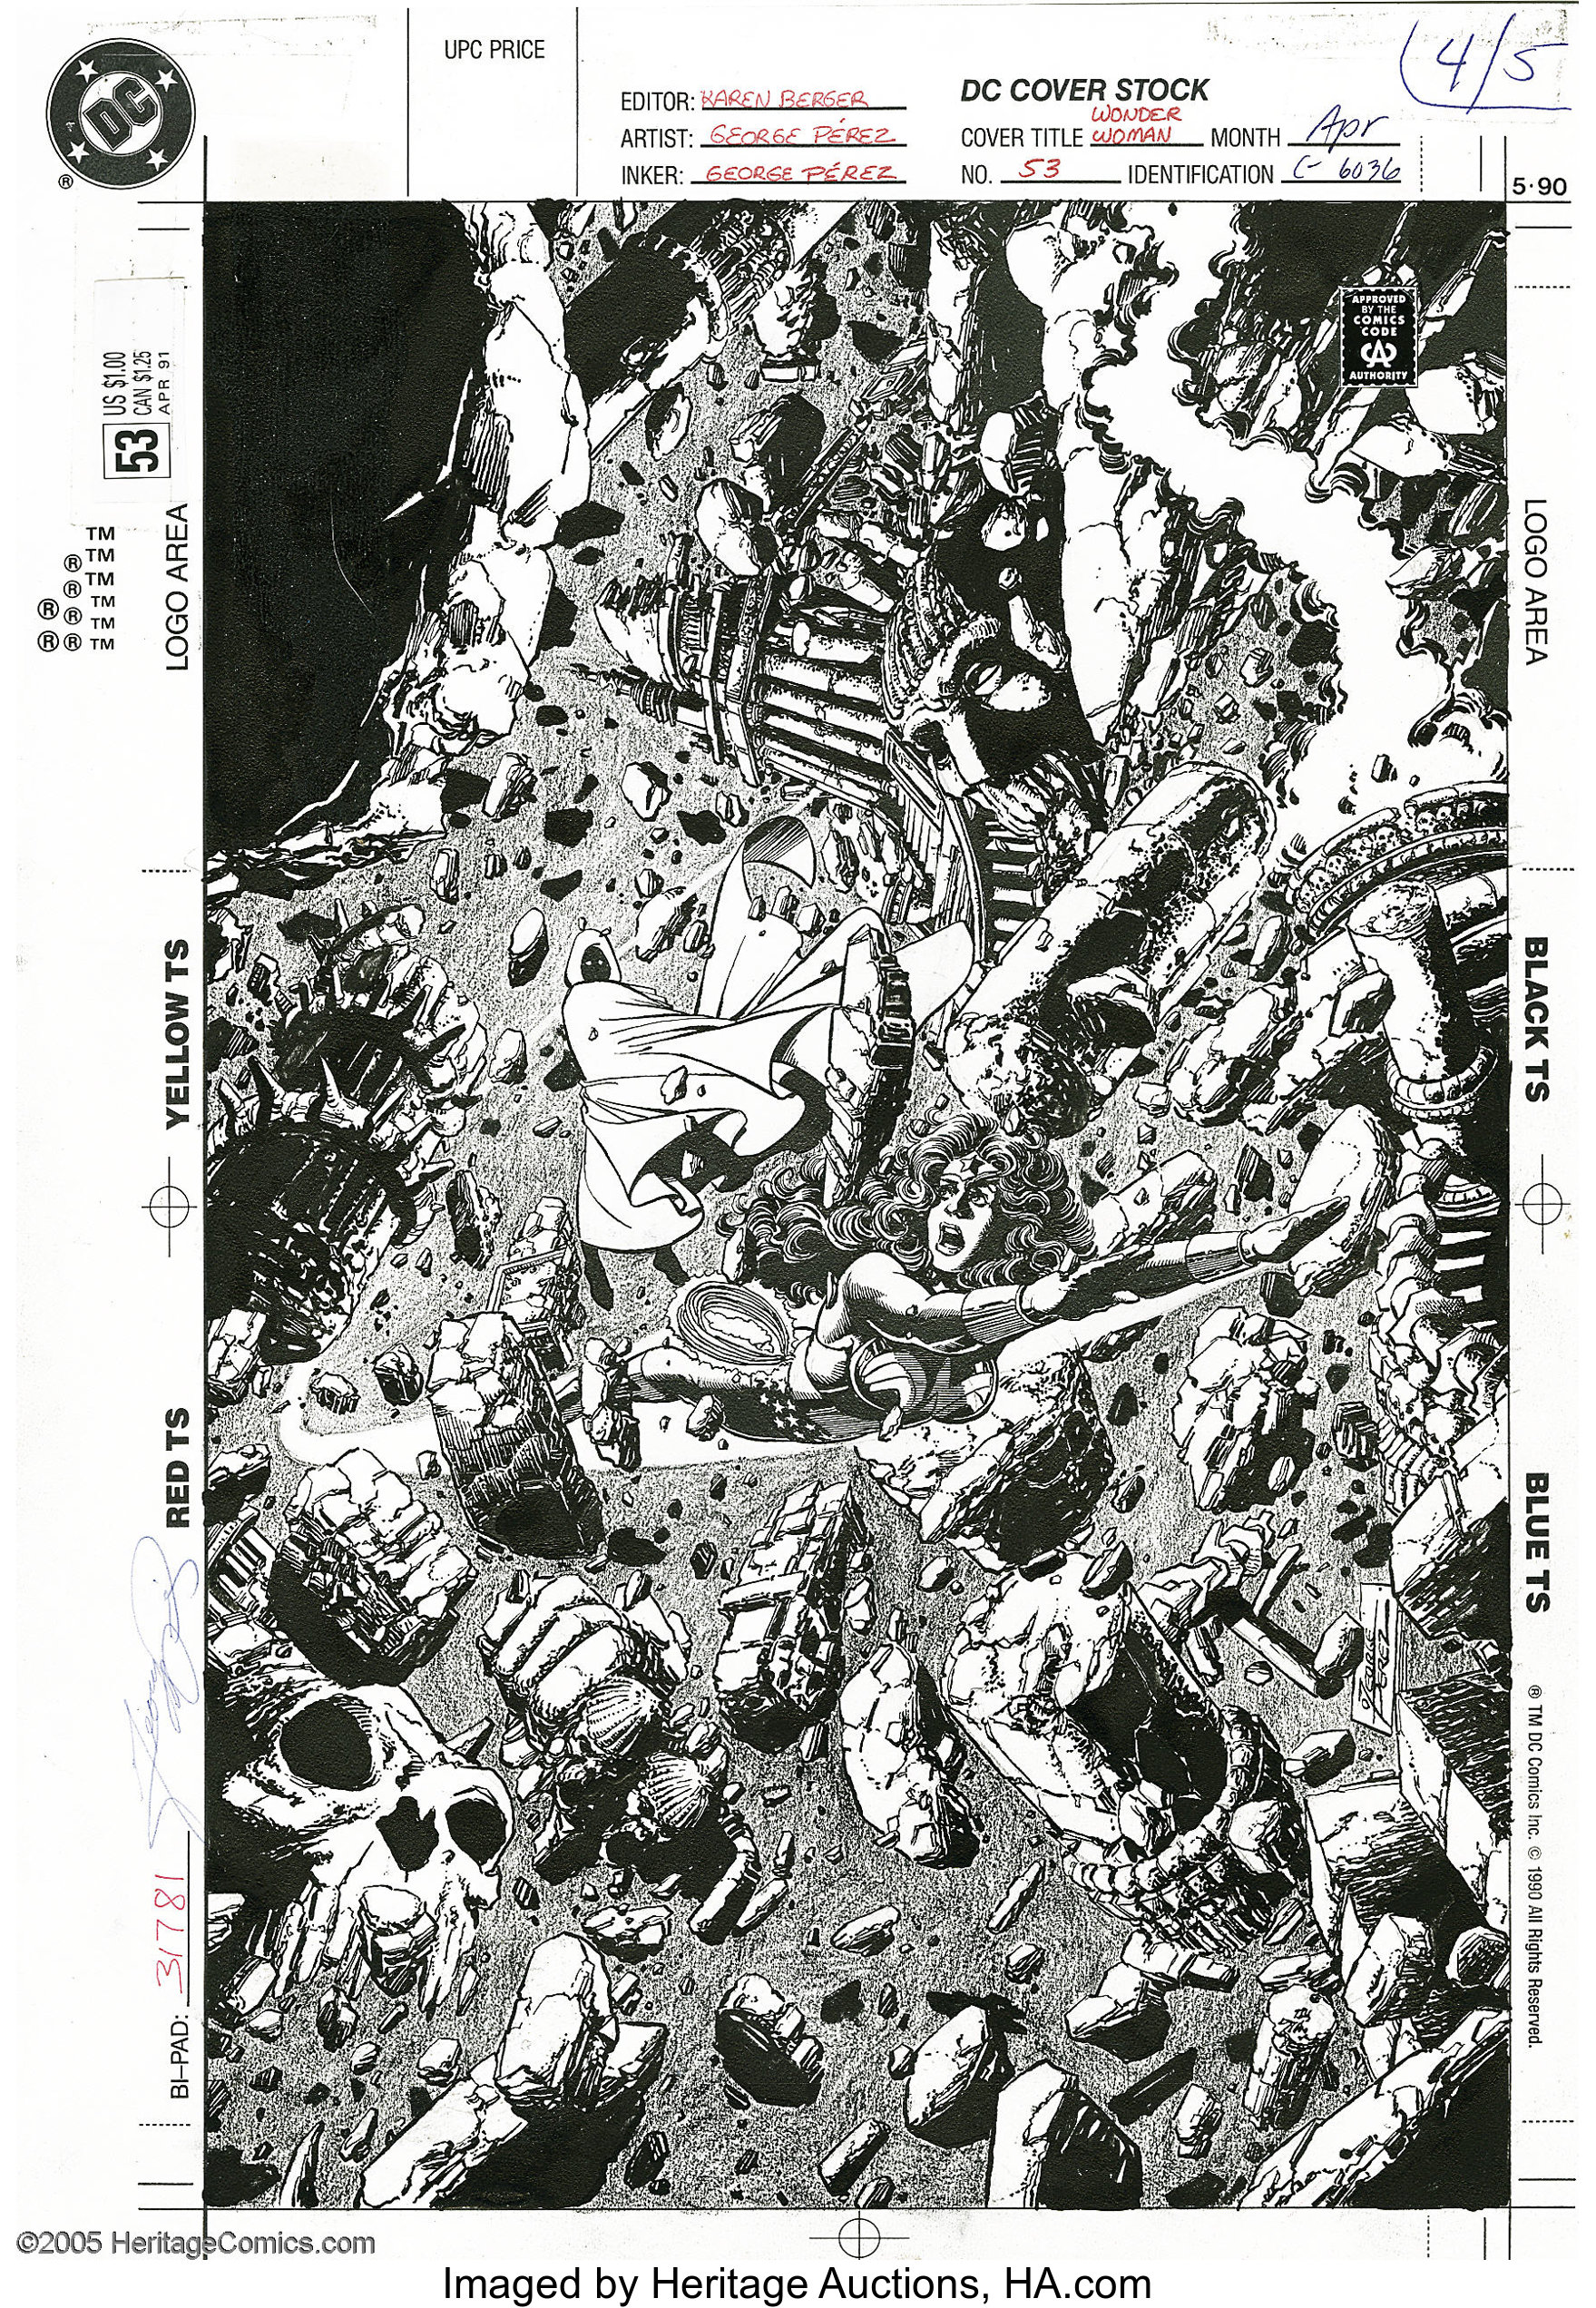 Original cover art by George Perez from Wonder Woman #53, 1991